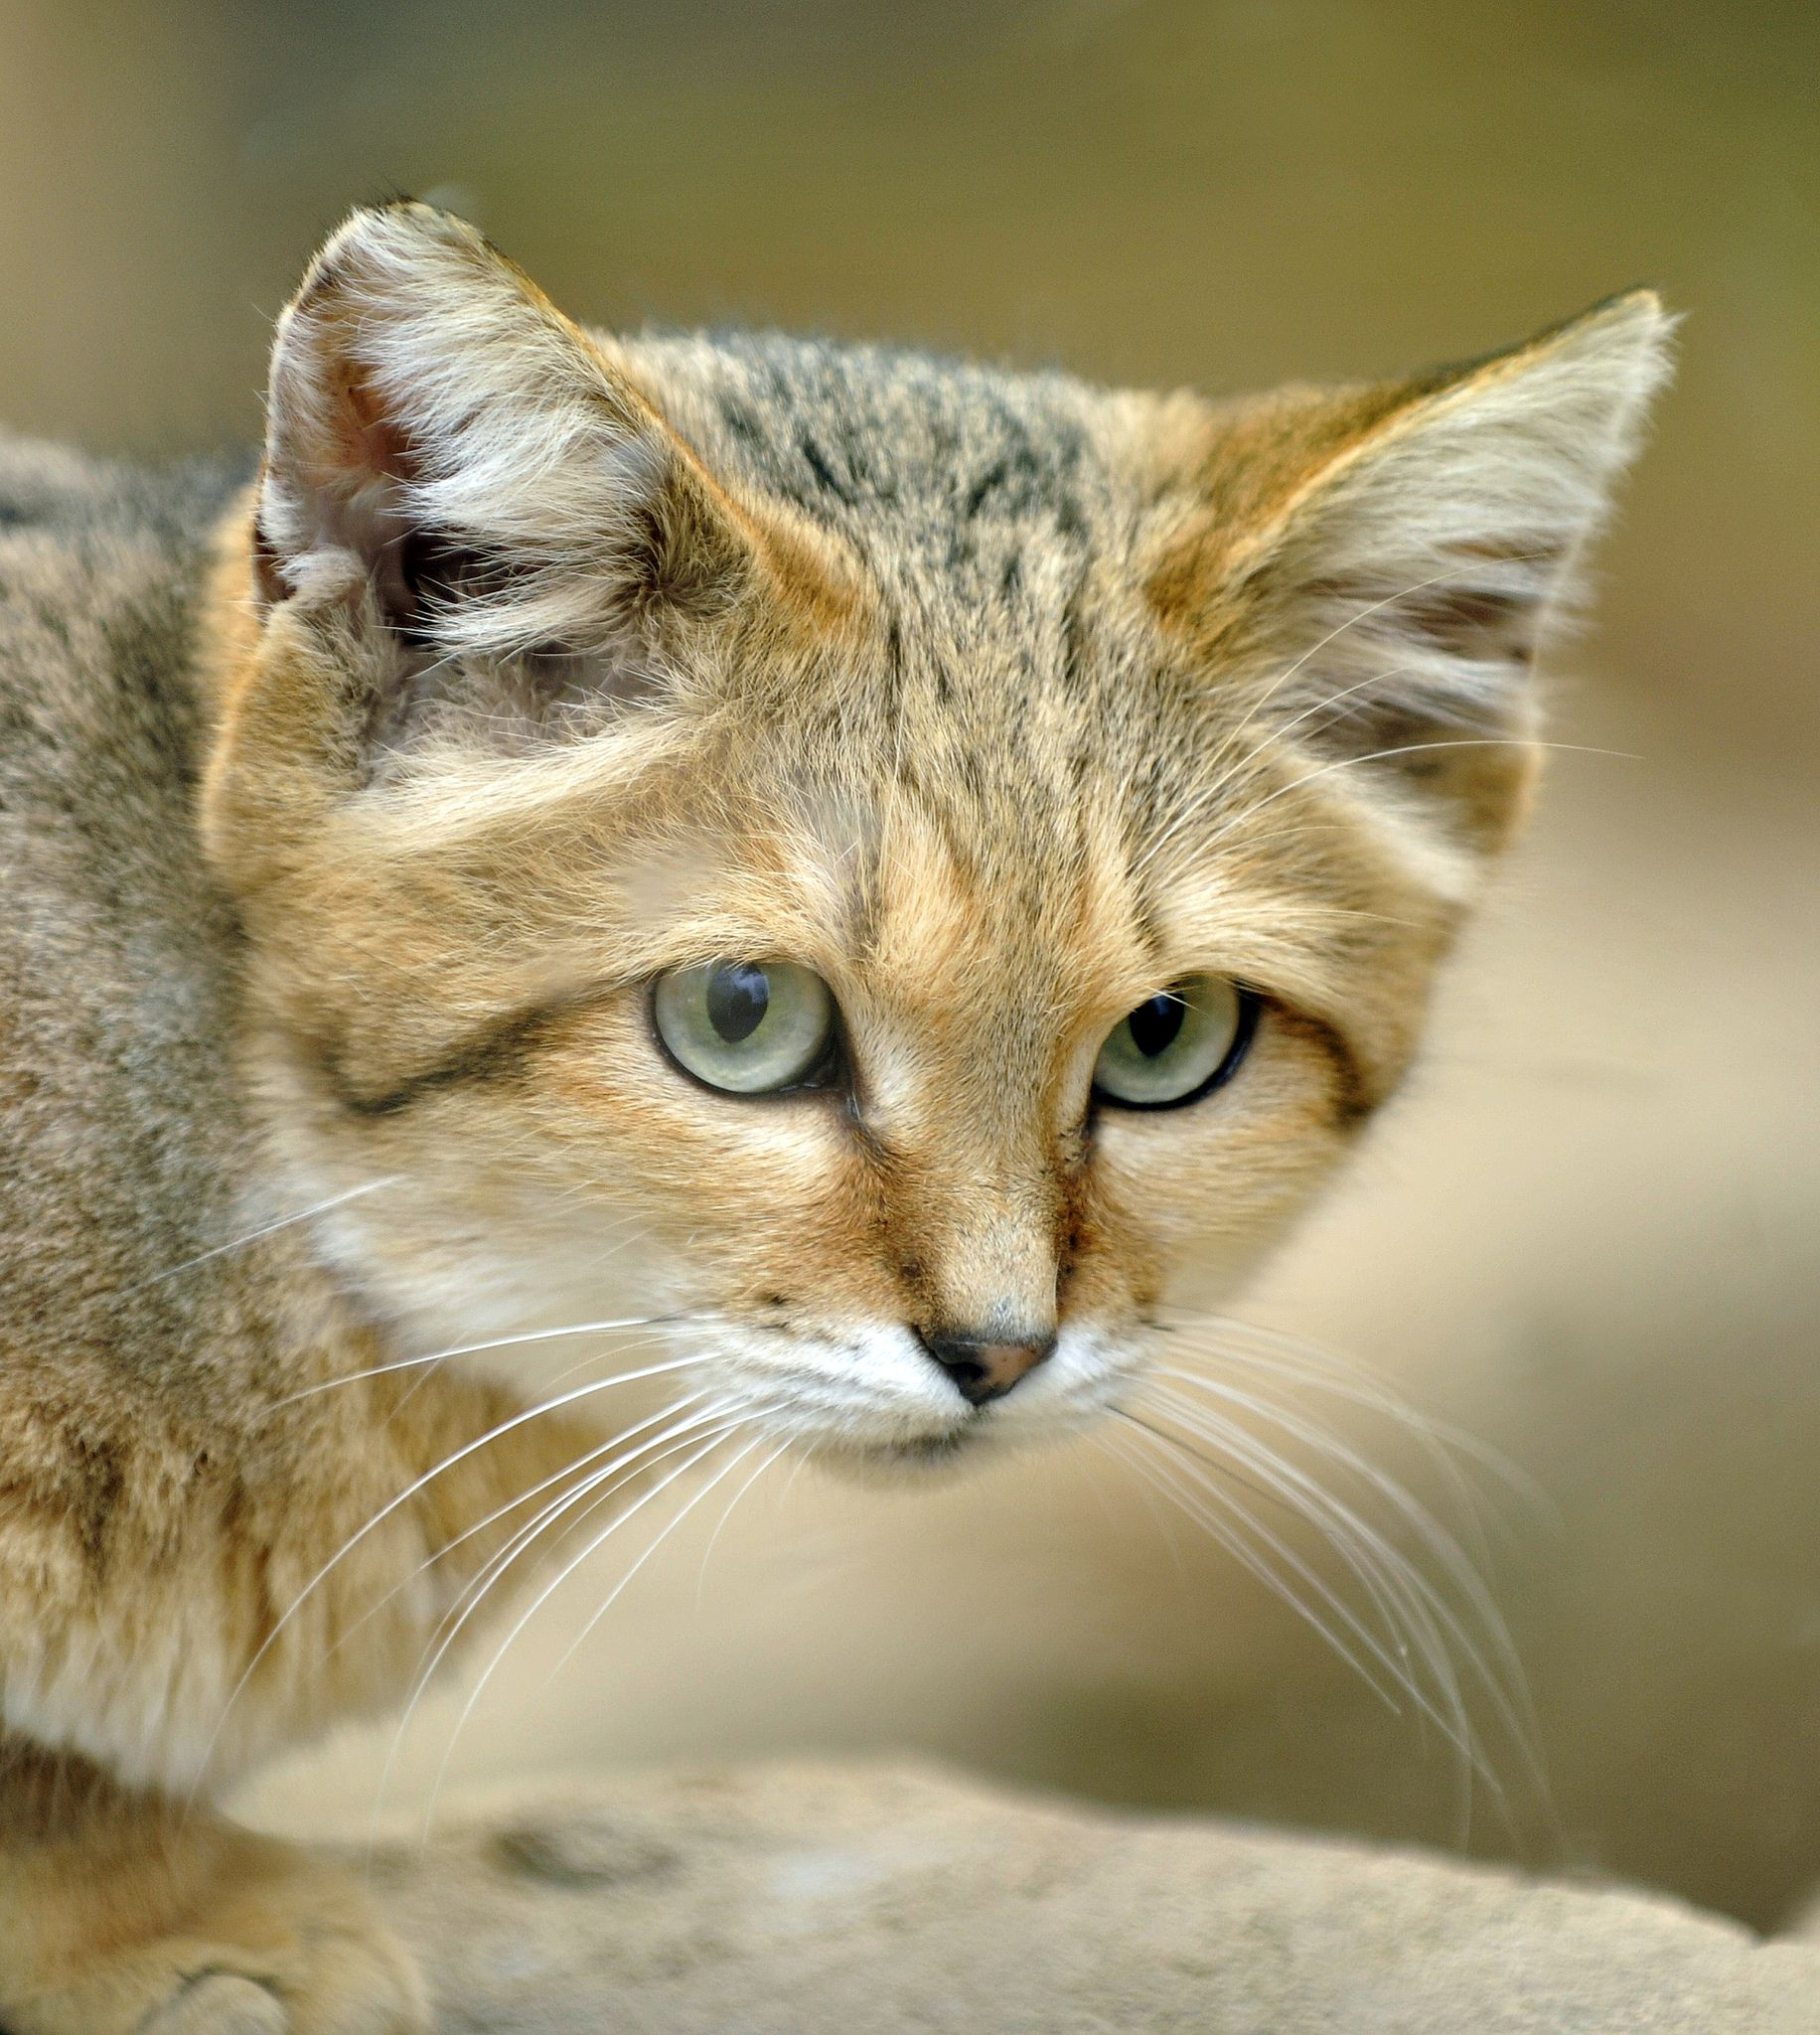 sand cat in 2020 Sand cat, Small wild cats, cats